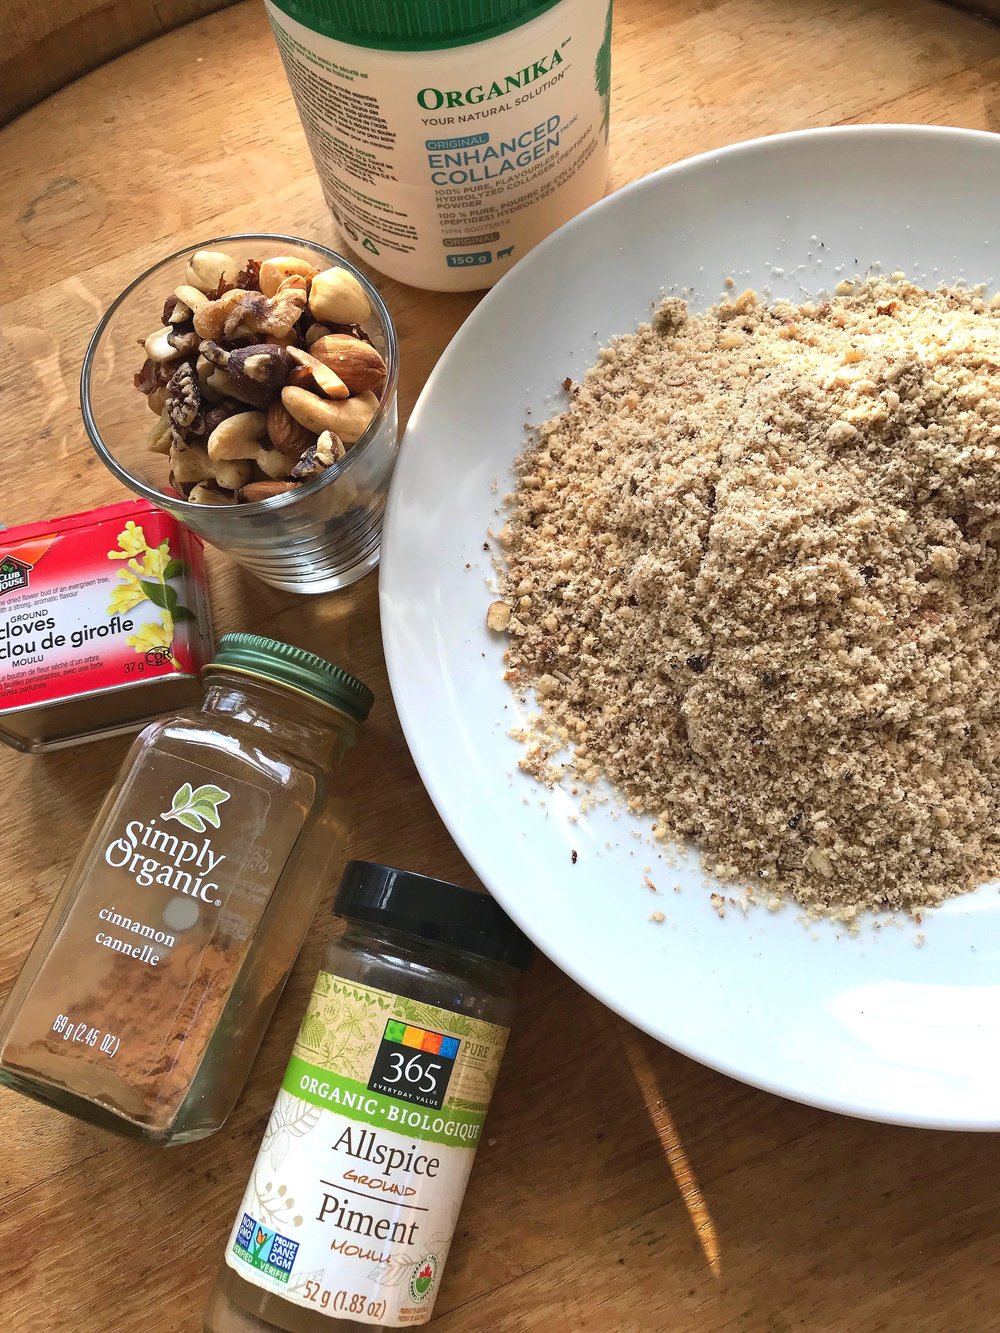 THIS BATCH USED ALMONDS, CASHEWS, WALNUTS, HAZELNUTS, COLLAGEN PEPTIDES (INSTEAD OF VEGAN PROTEIN) AND DRIED UNSWEETENED CRANBERRIES.